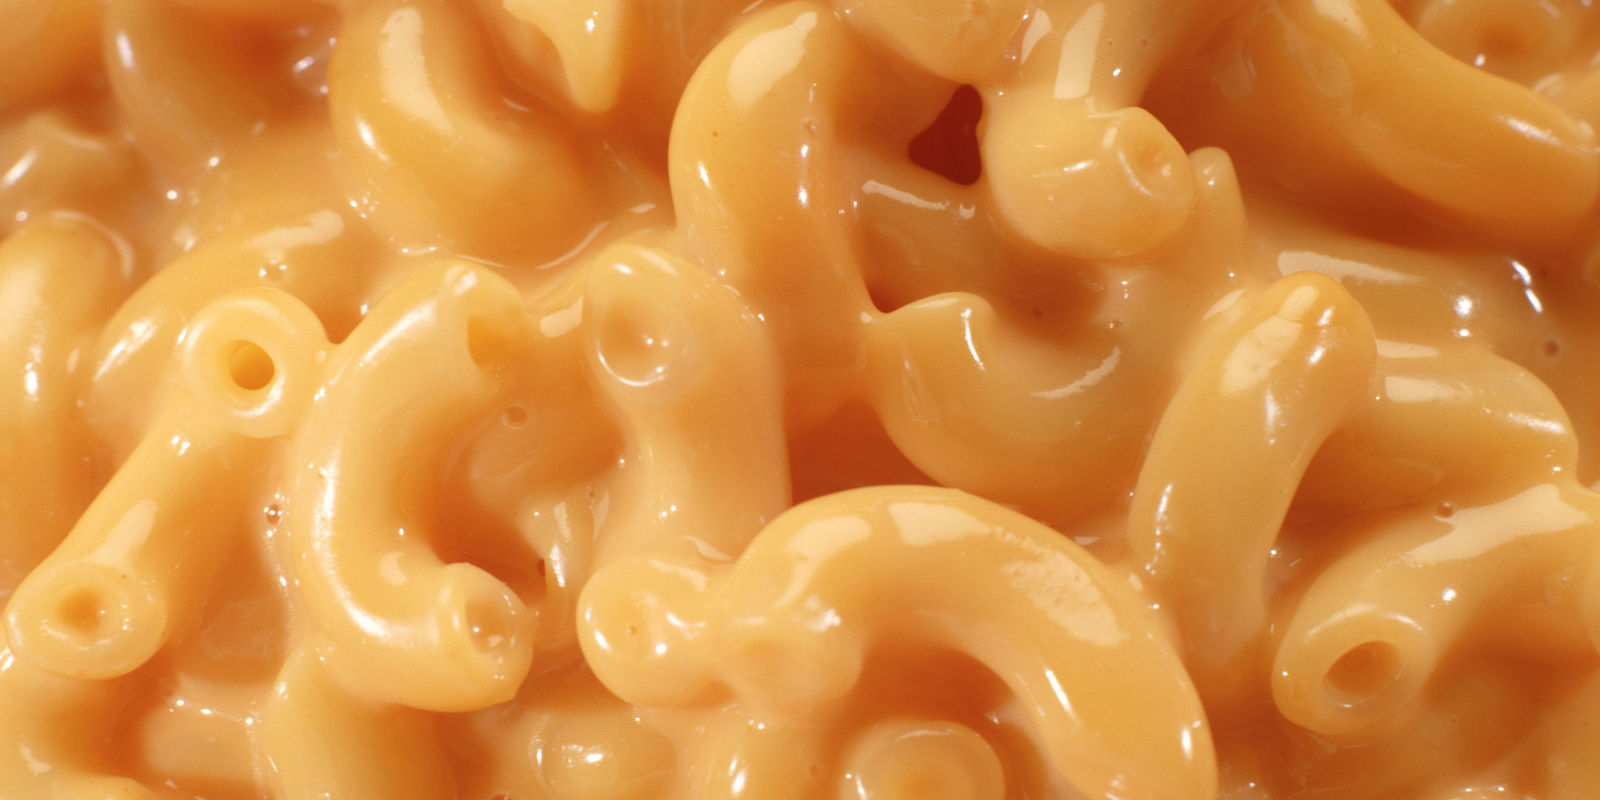 Reasons You Should Never Eat Mac and Cheese